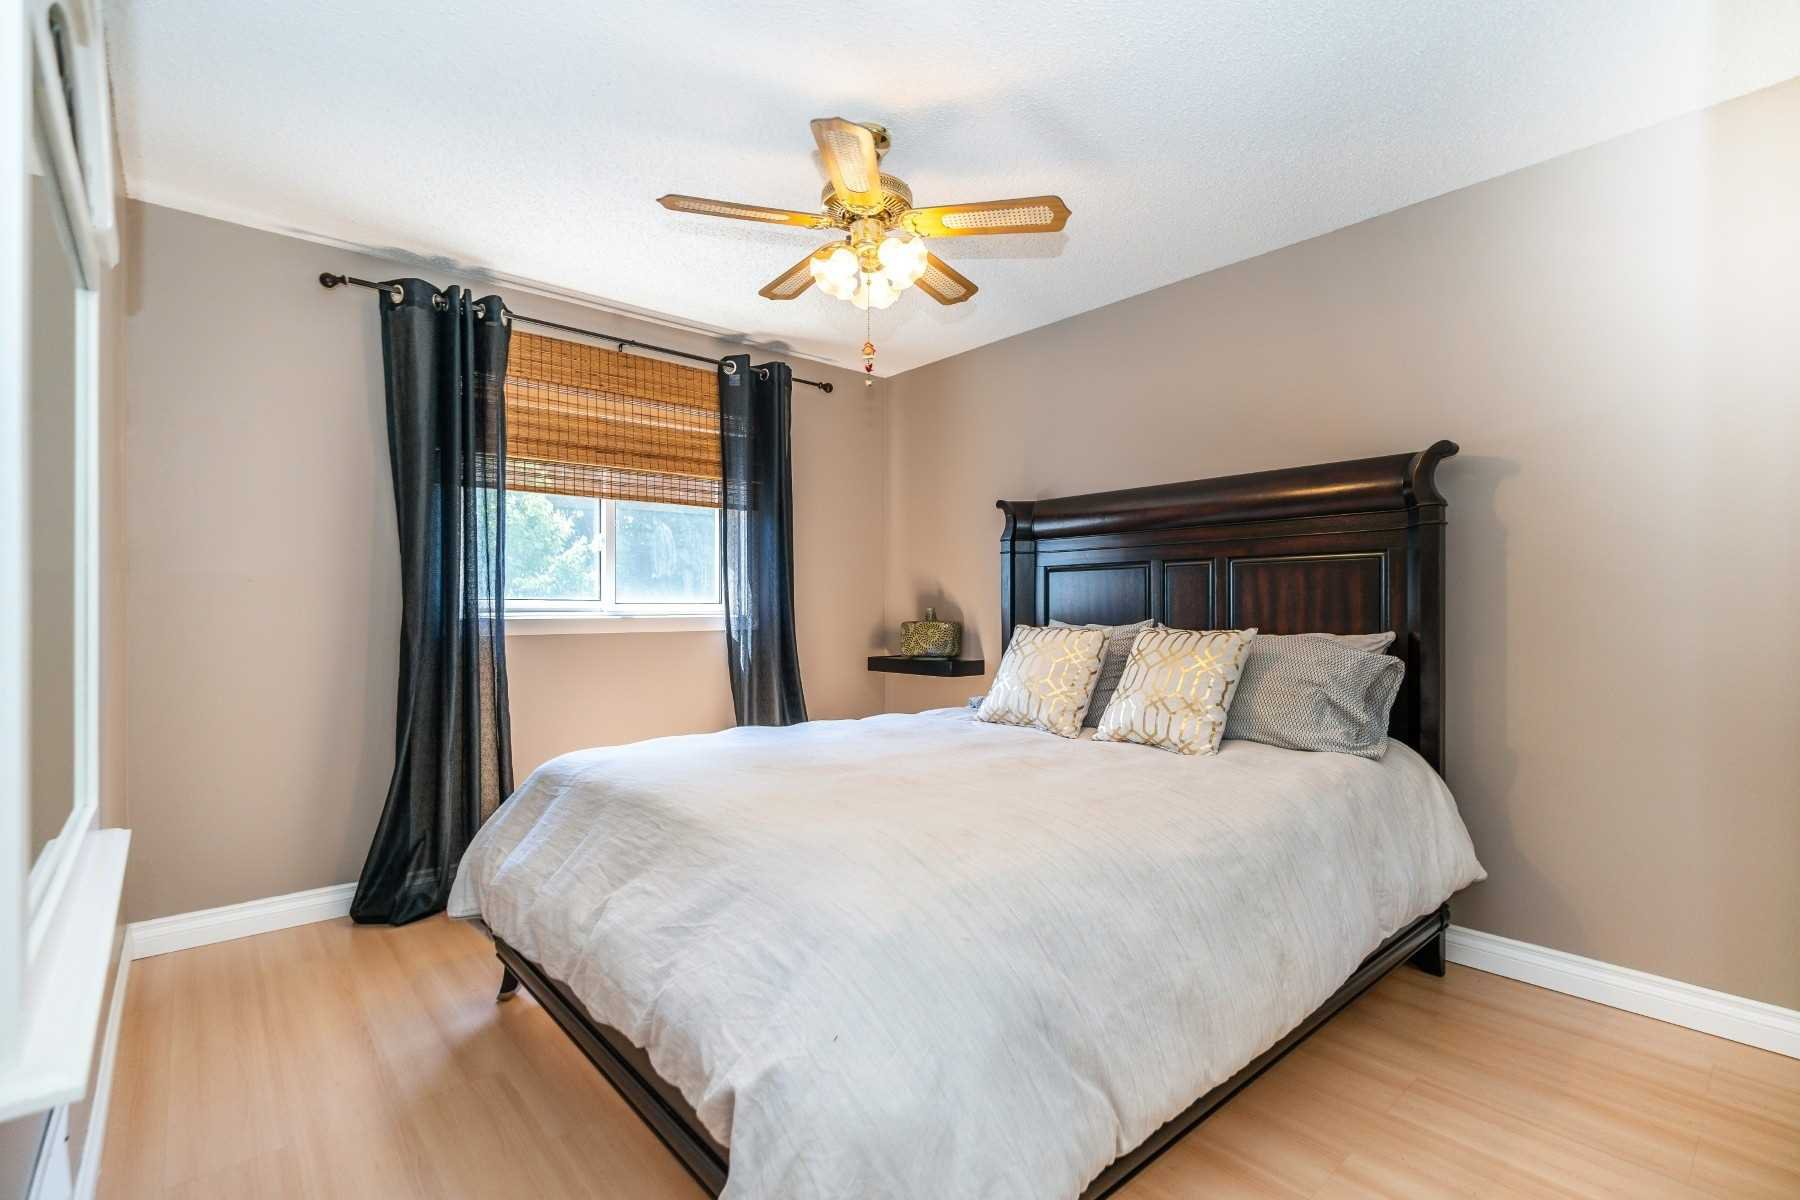 Photo 24: Photos: 1153 Snowberry Court in Oshawa: Pinecrest House (2-Storey) for sale : MLS®# E4794796